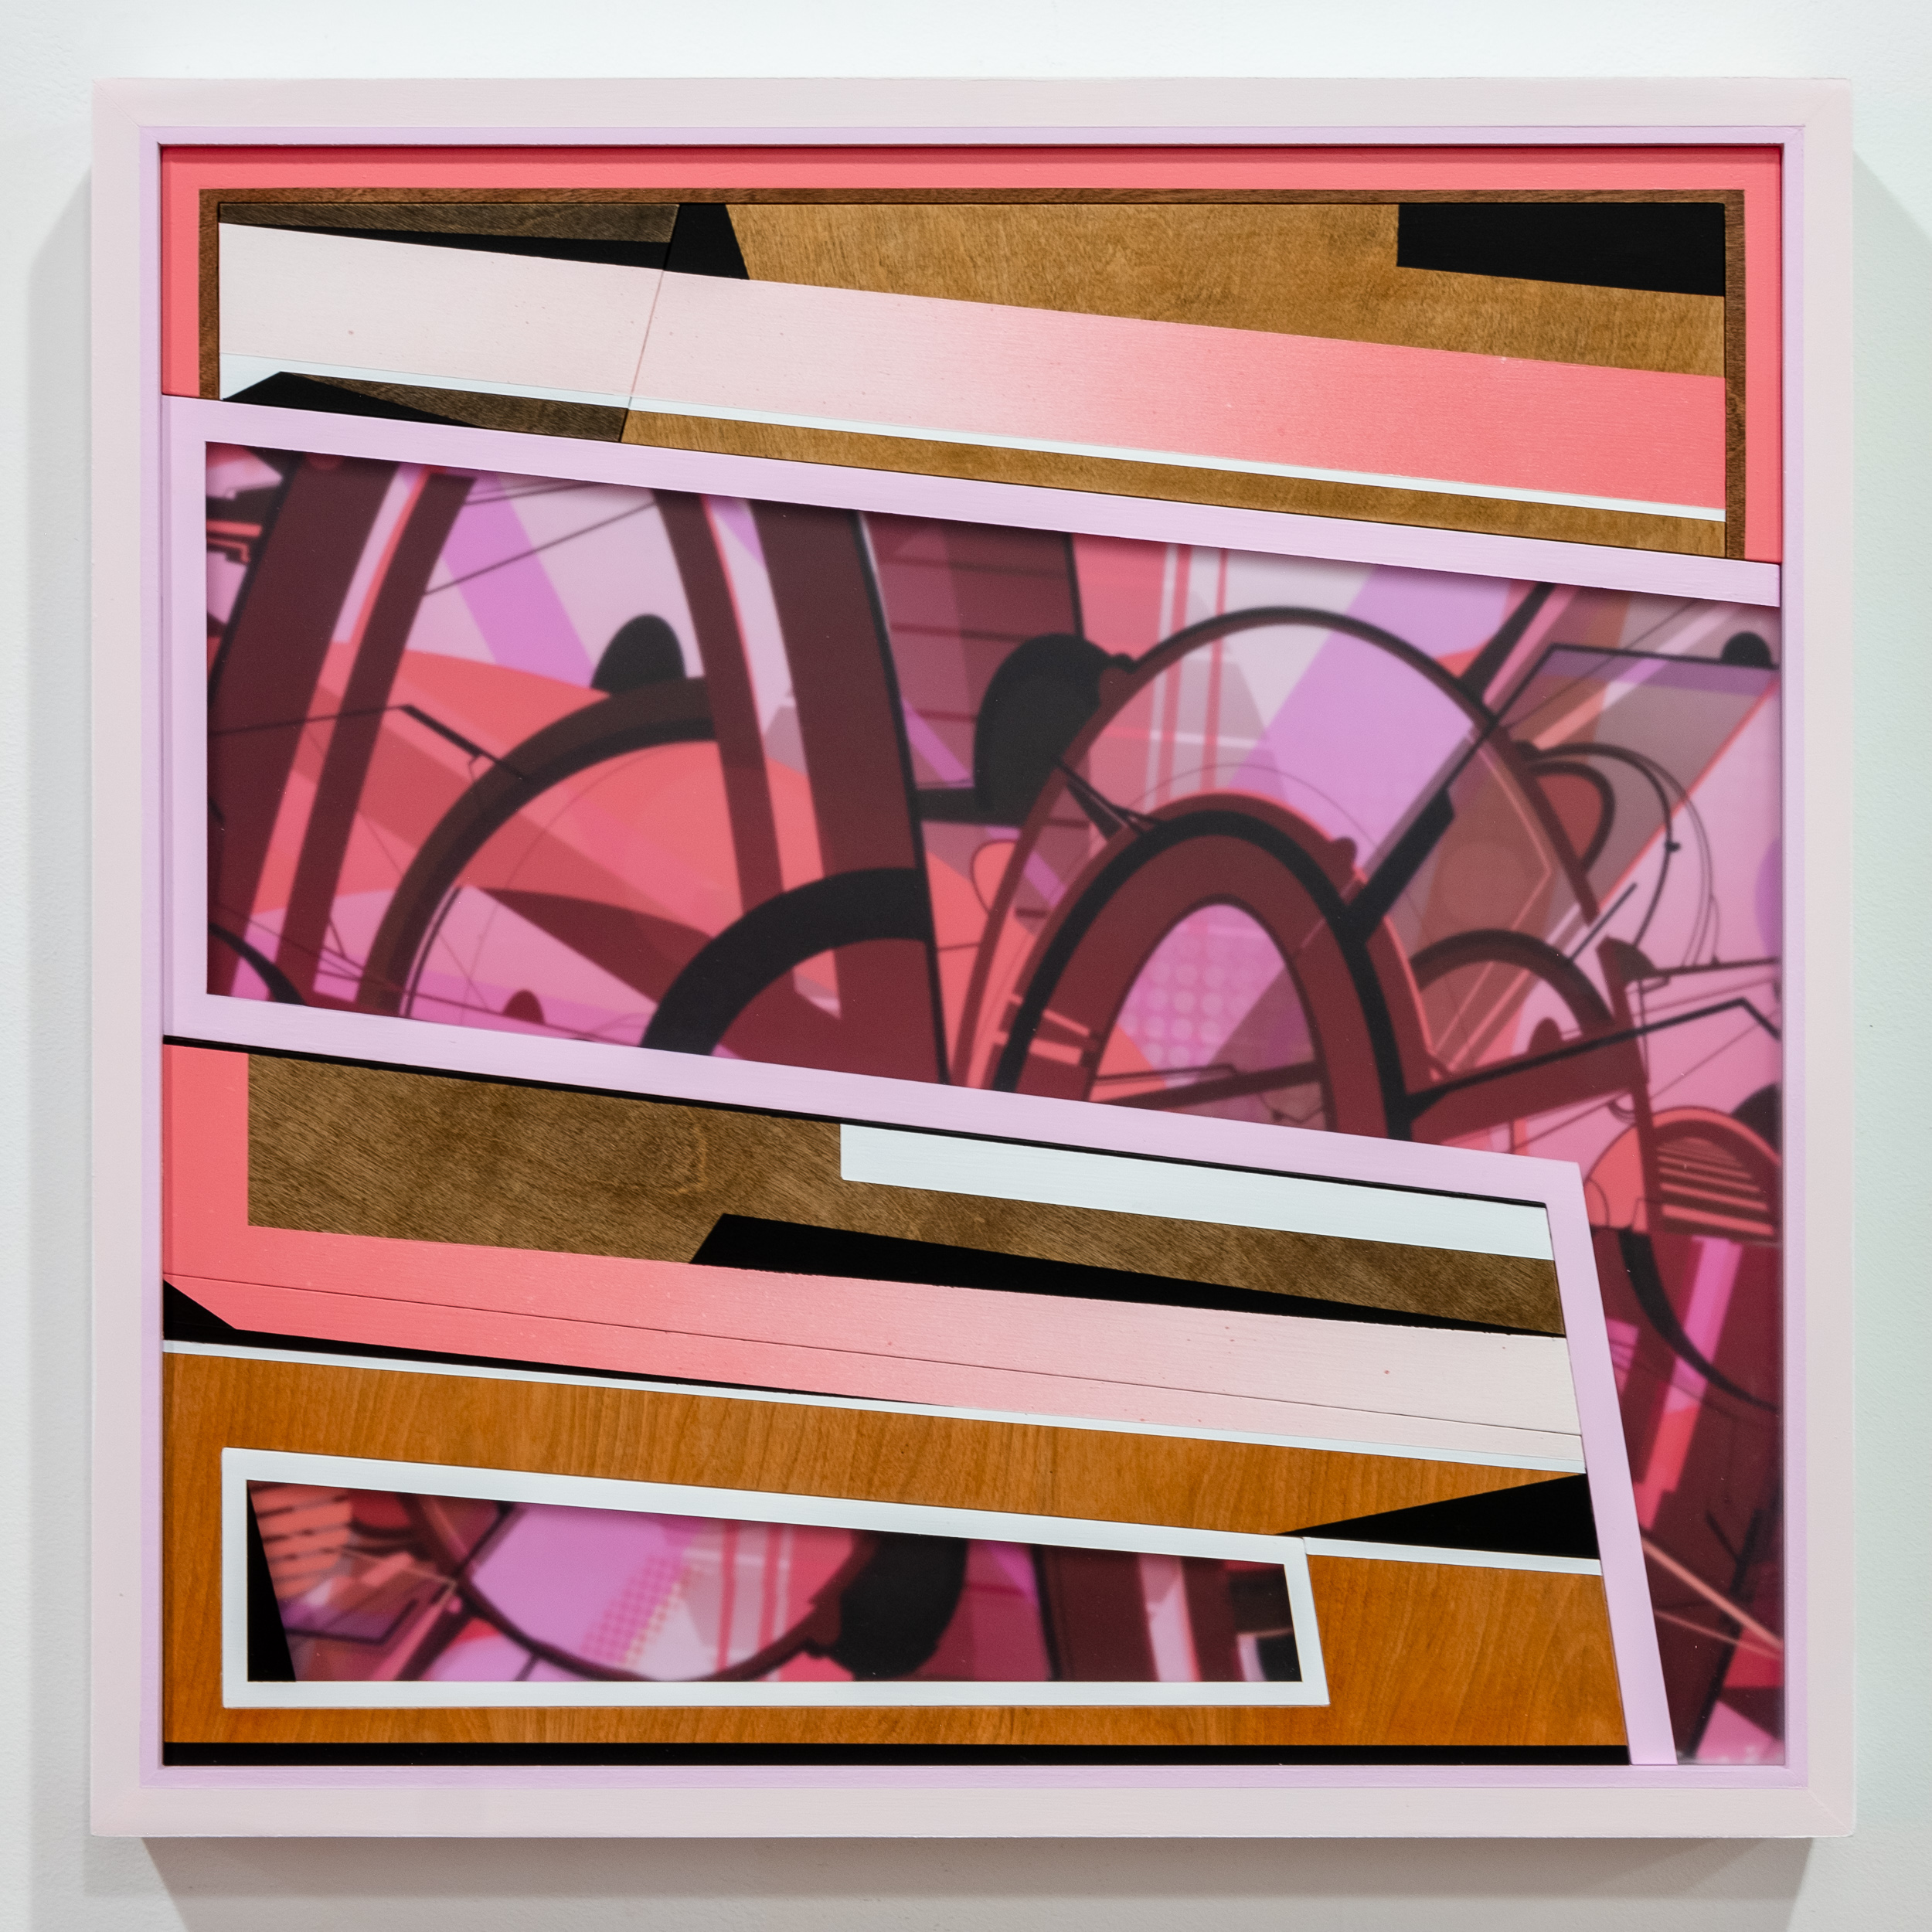 PHIL HARRIS   Fever Dream  mixed media 26 x 26 inches PHA 022G